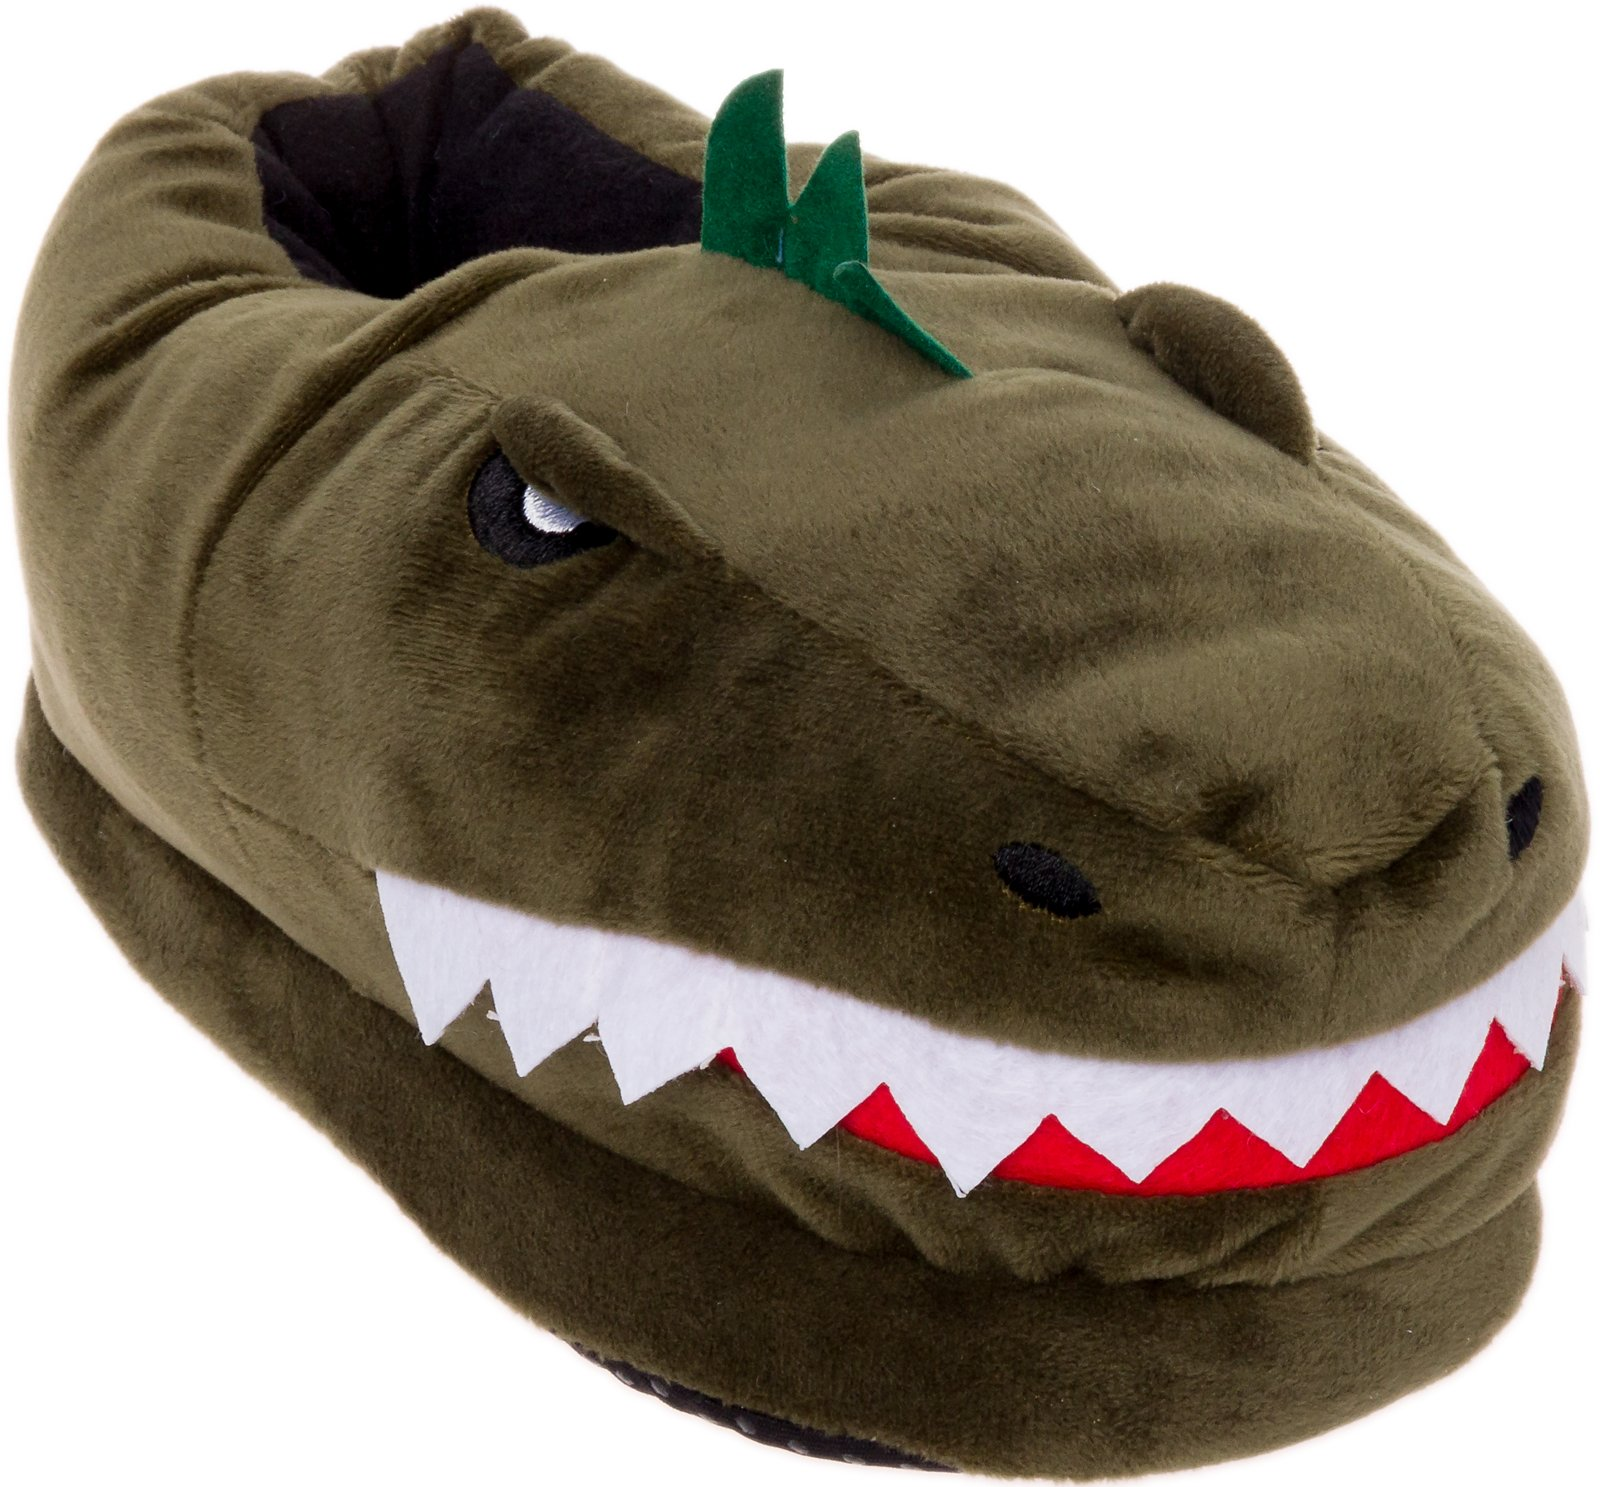 Silver Lilly Dinosaur Slippers - Plush T-Rex Slippers w/Memory Foam Support (Green, X-Large)